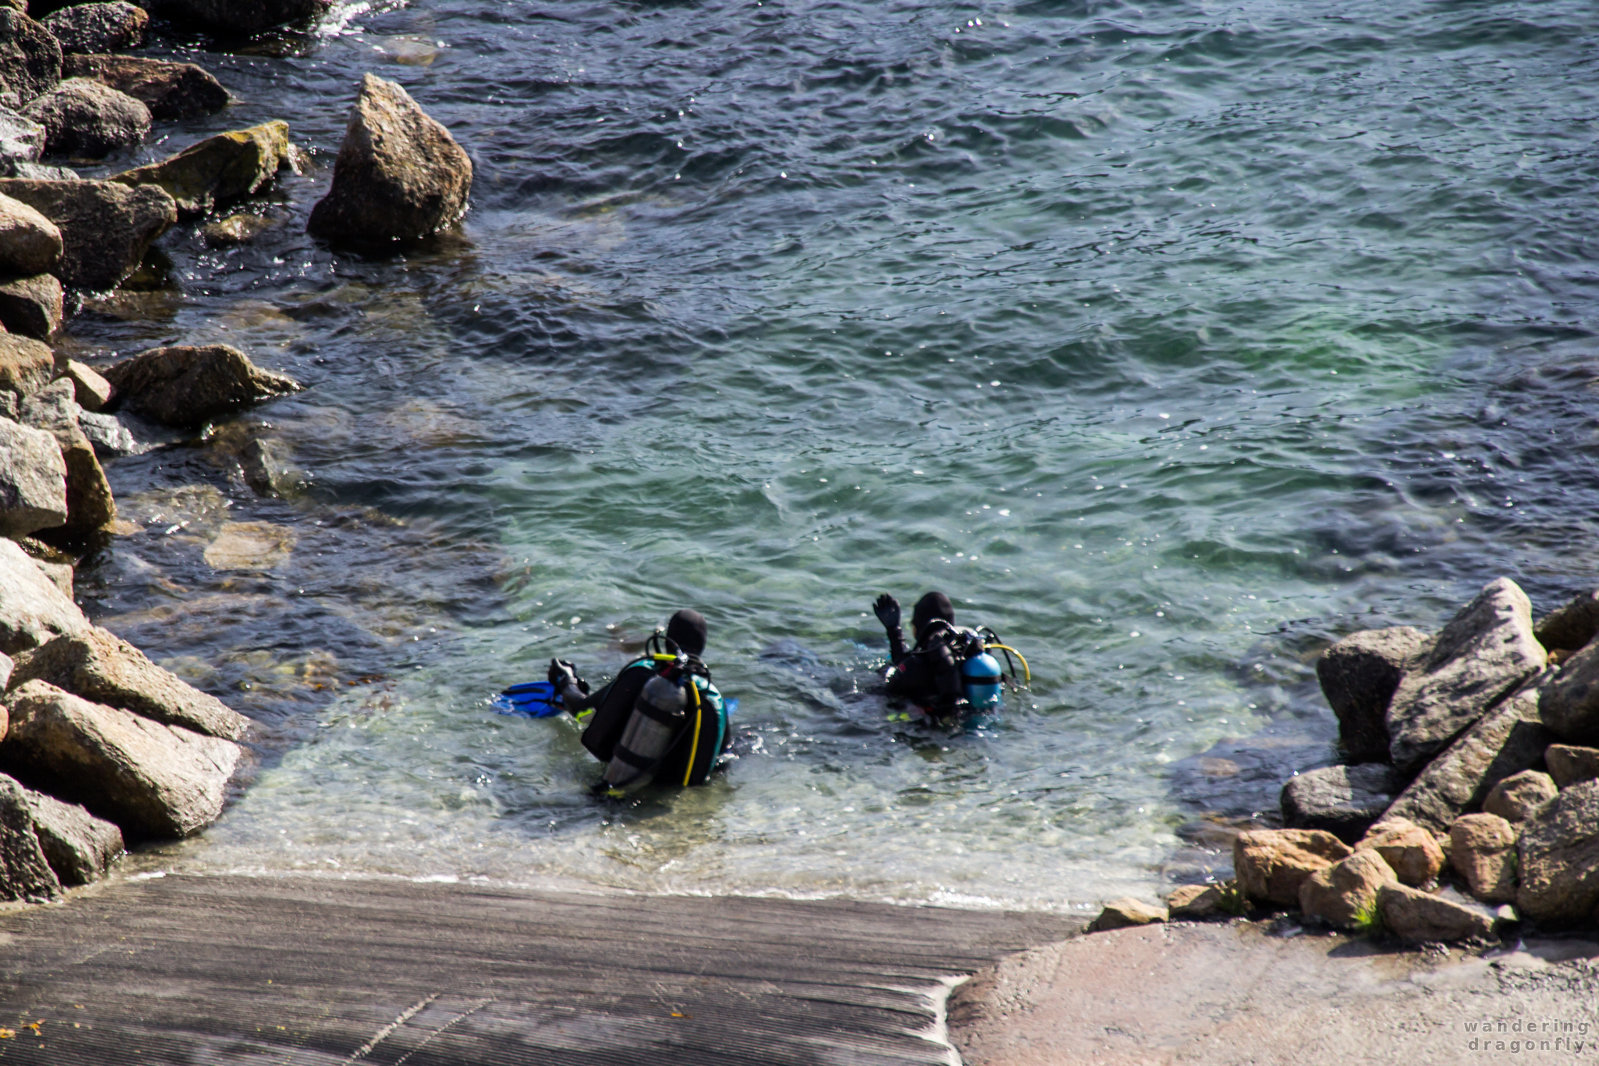 Scuba divers enter the water at Whalers Cove -- ocean, rock, scuba diver, water